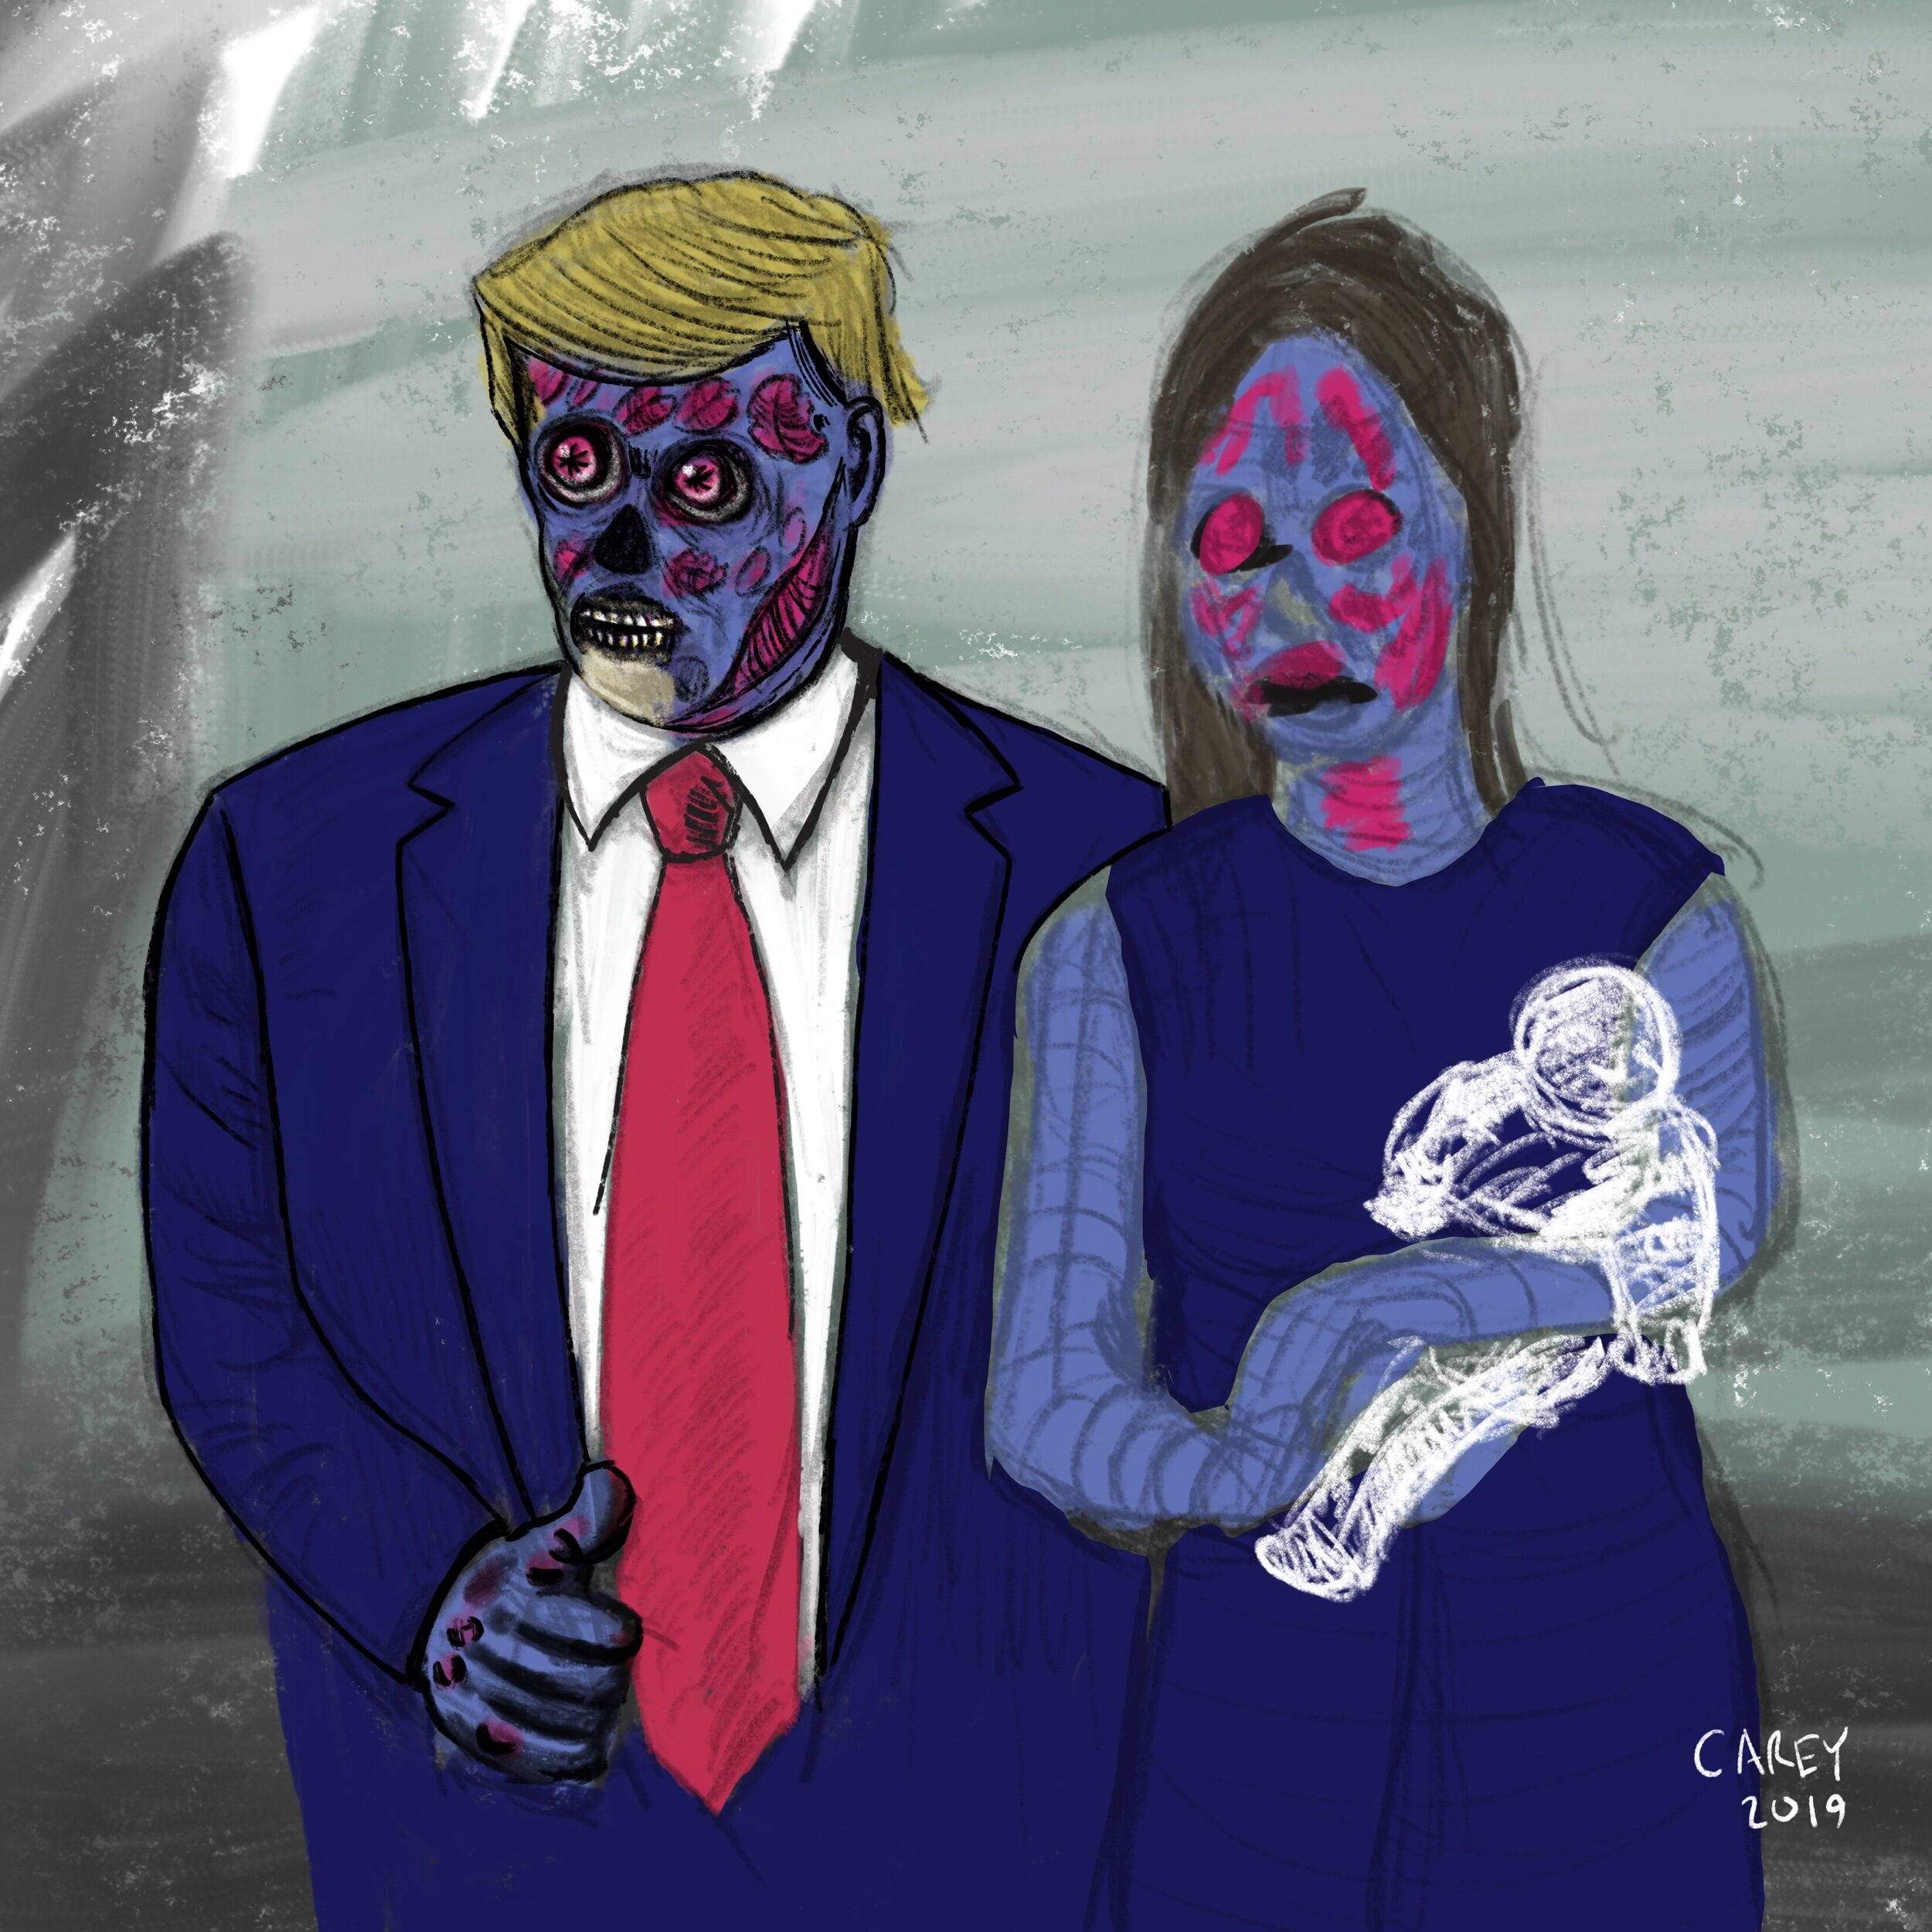 An unfinished sketch of the president and his wife using the baby of mass shooting victims as a photo op prop. True story.